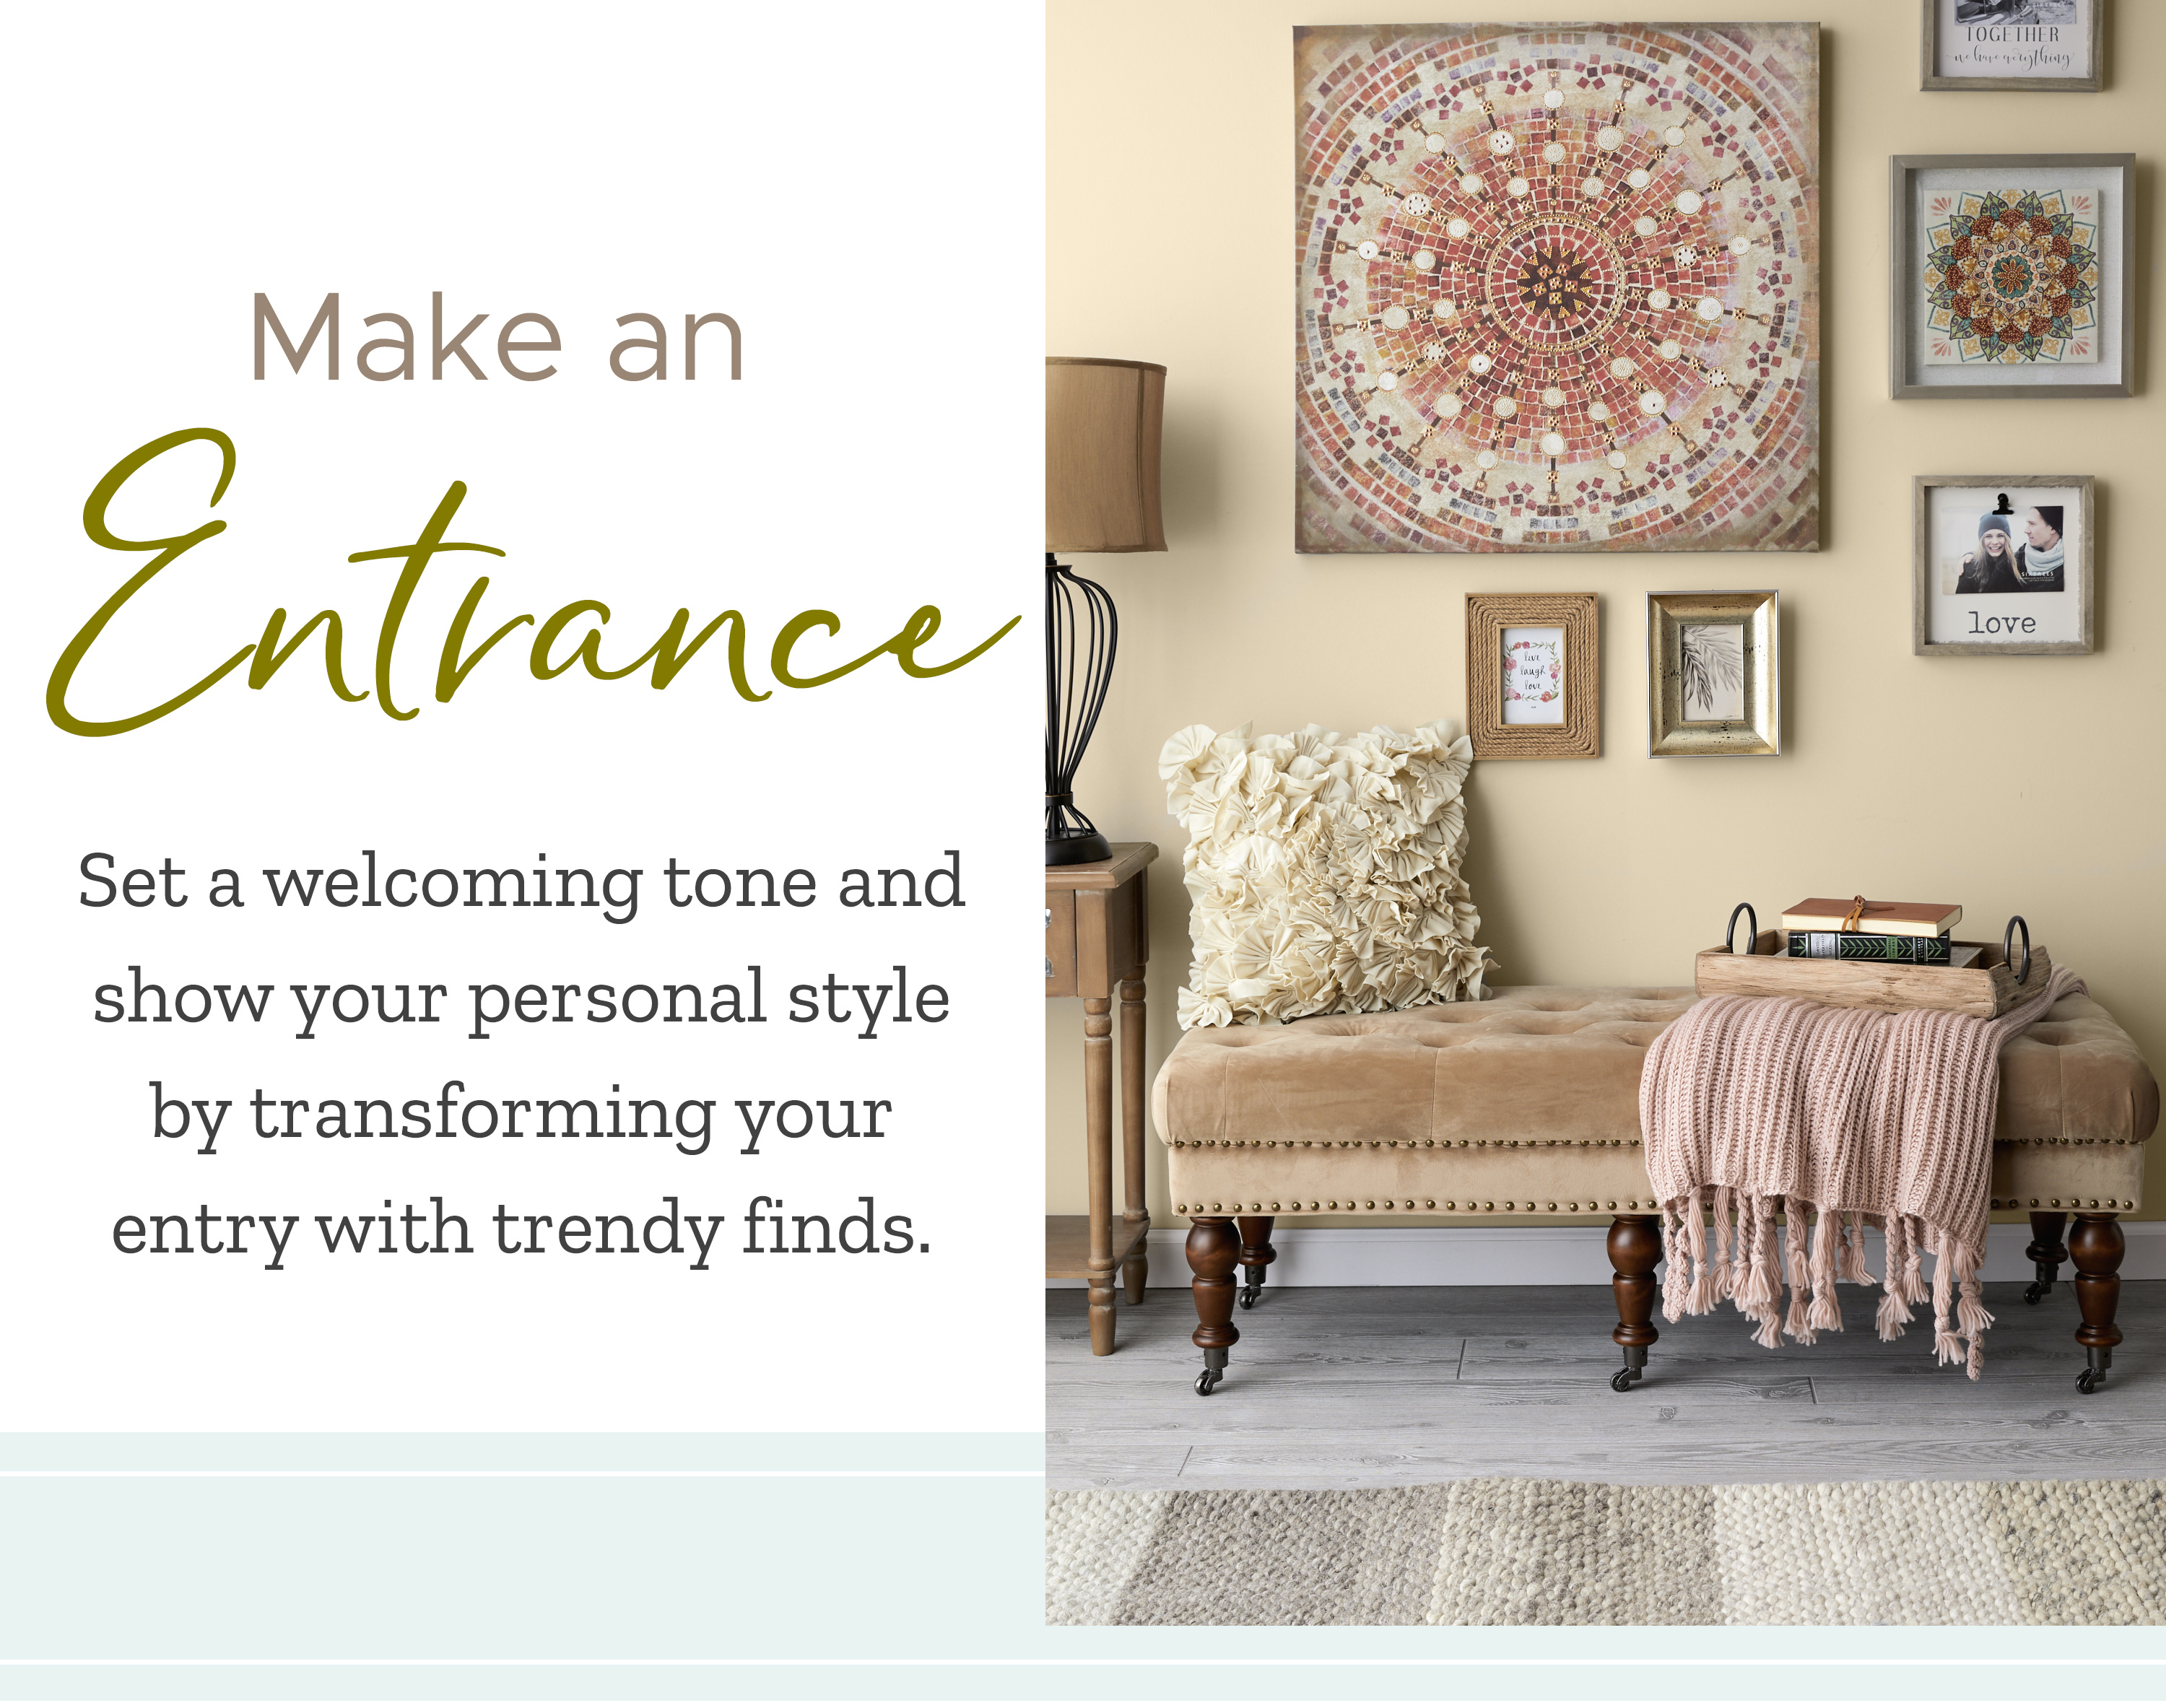 Home Décor - Set a welcoming tone and show your personal style by transforming your entry with trendy finds.